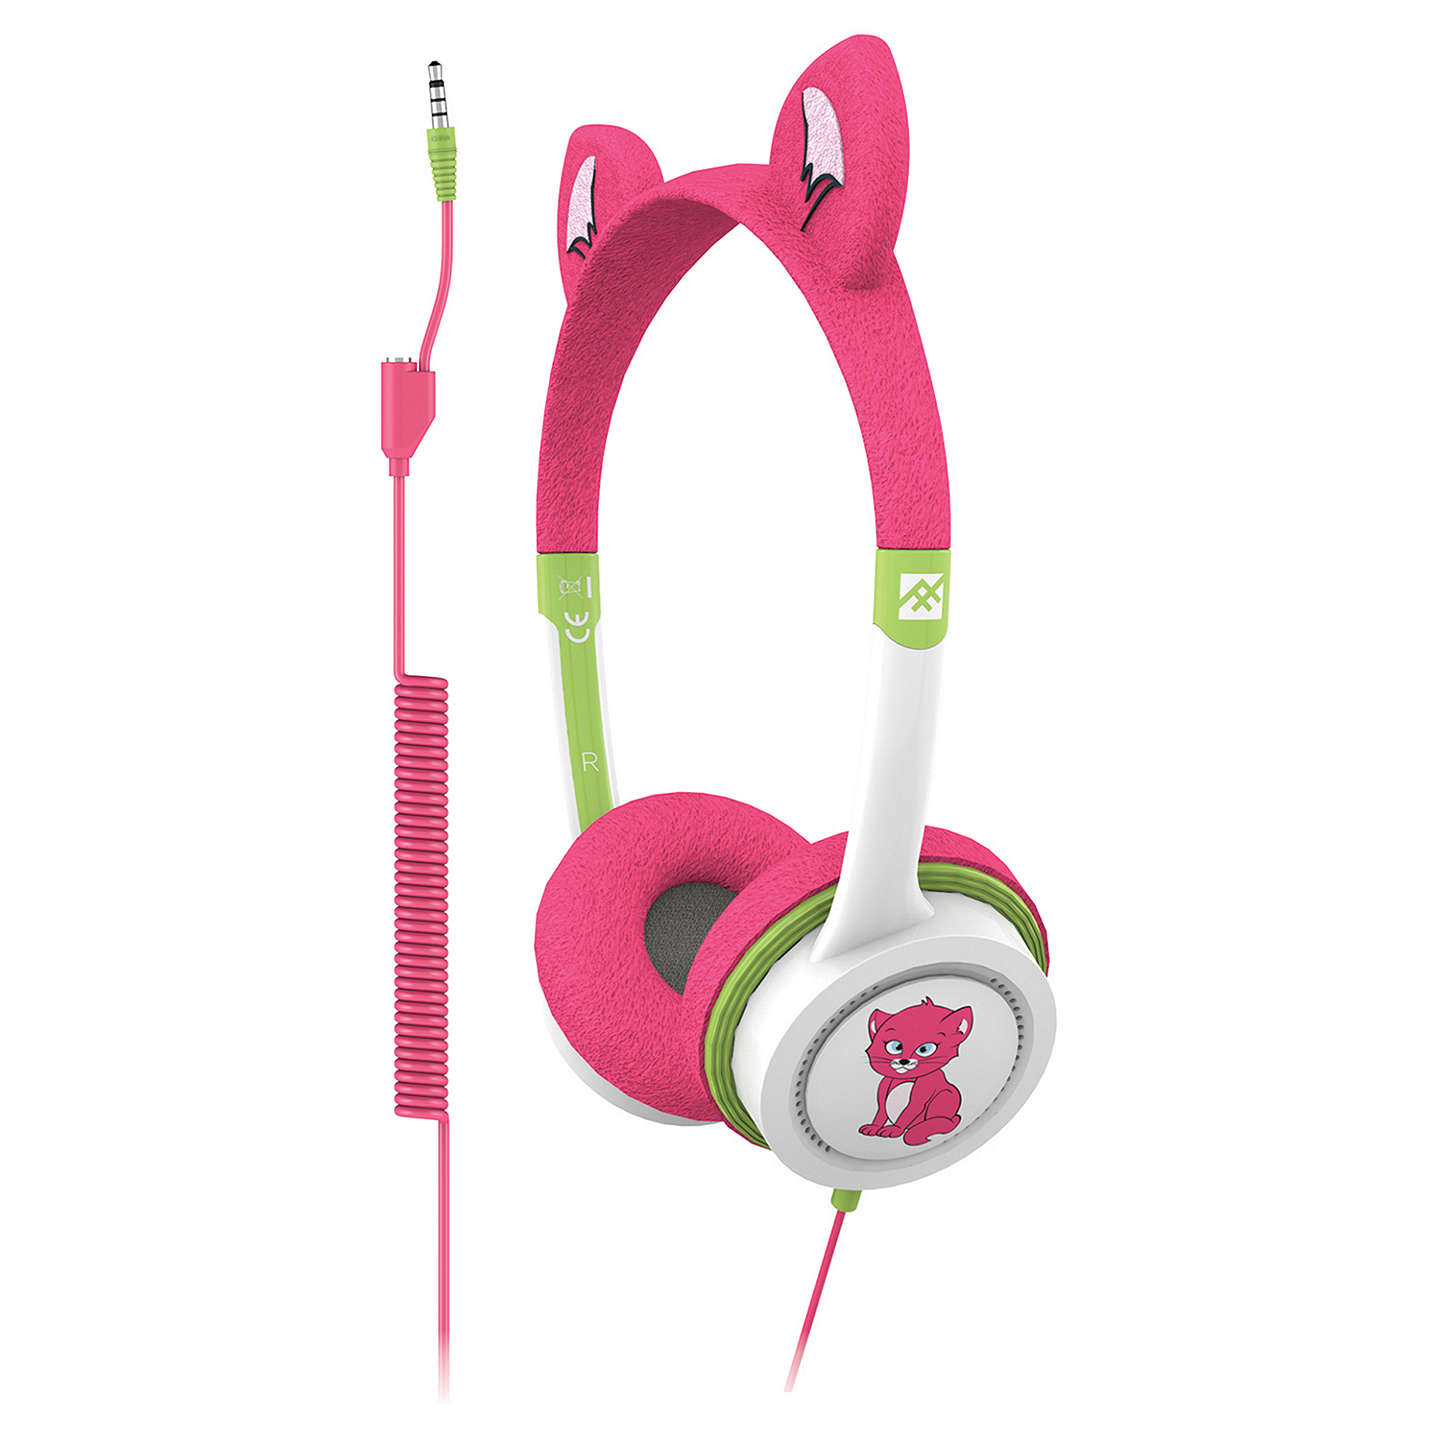 BuyZAGG ifrogz Little Rockerz Children's Volume Limiting On-Ear Headphones, Kitten Online at johnlewis.com